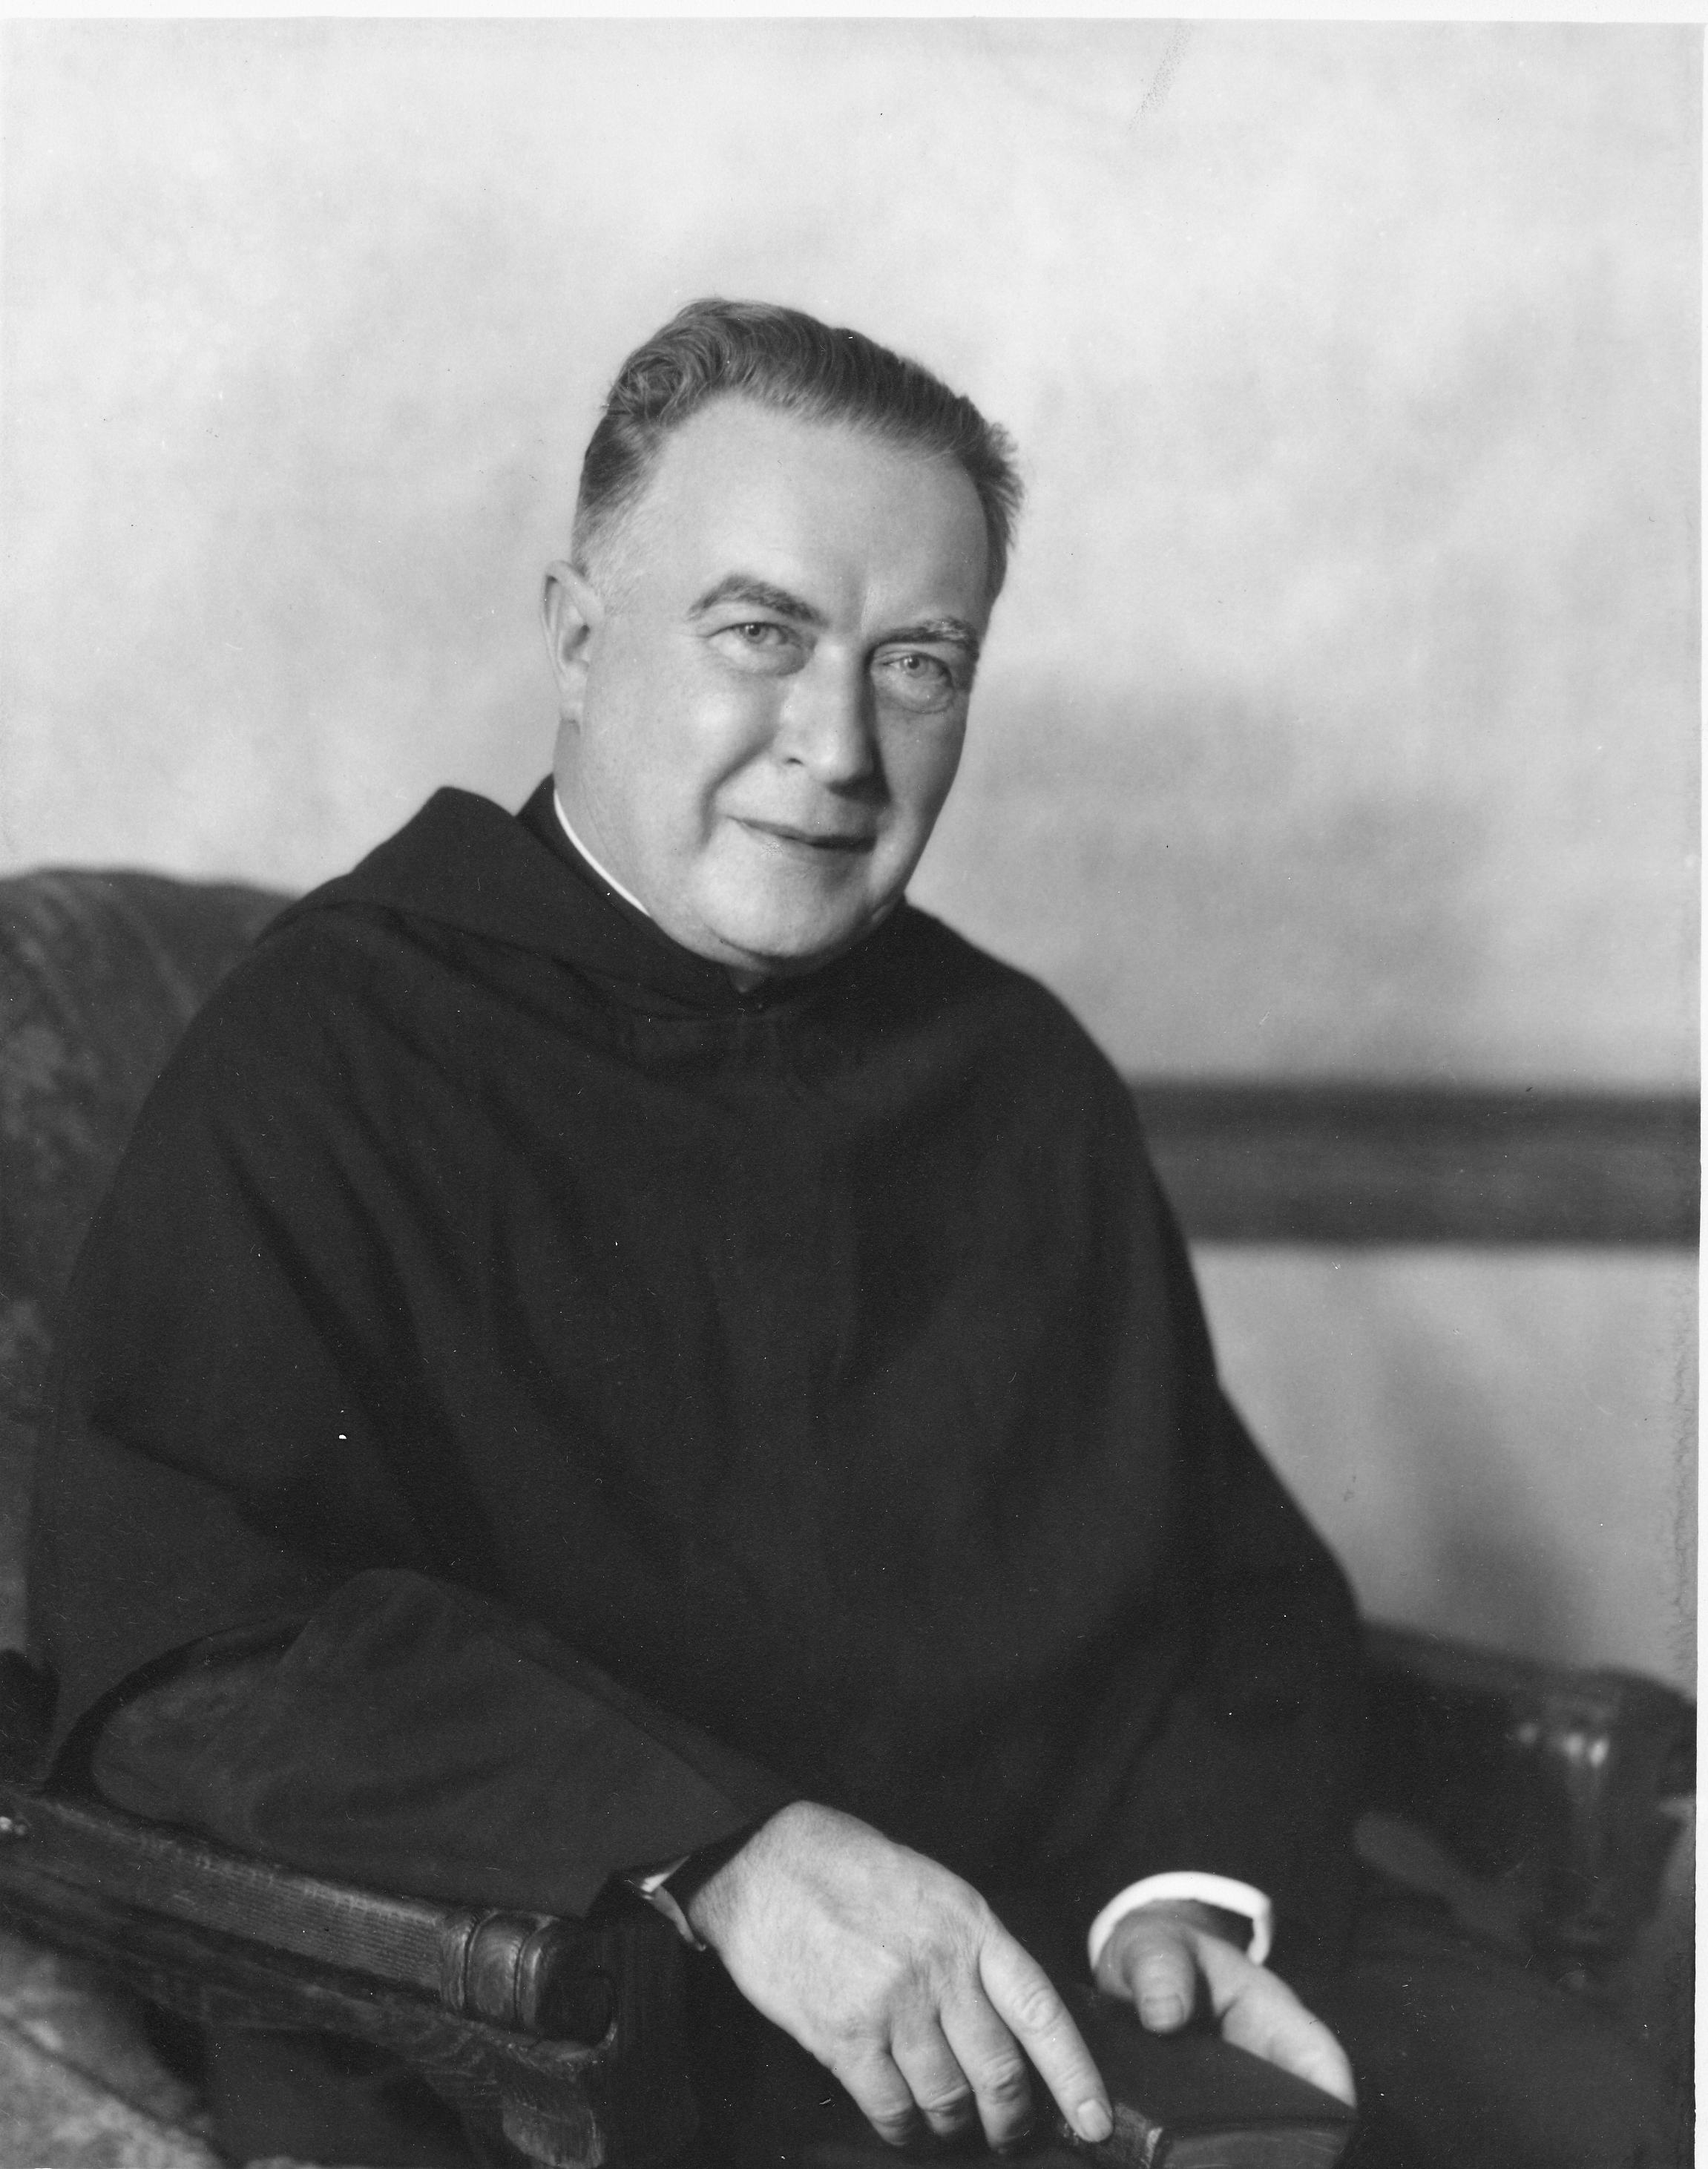 Reverend Joseph M. Dougherty, O.S.A., Ph.D., (1896-1954)